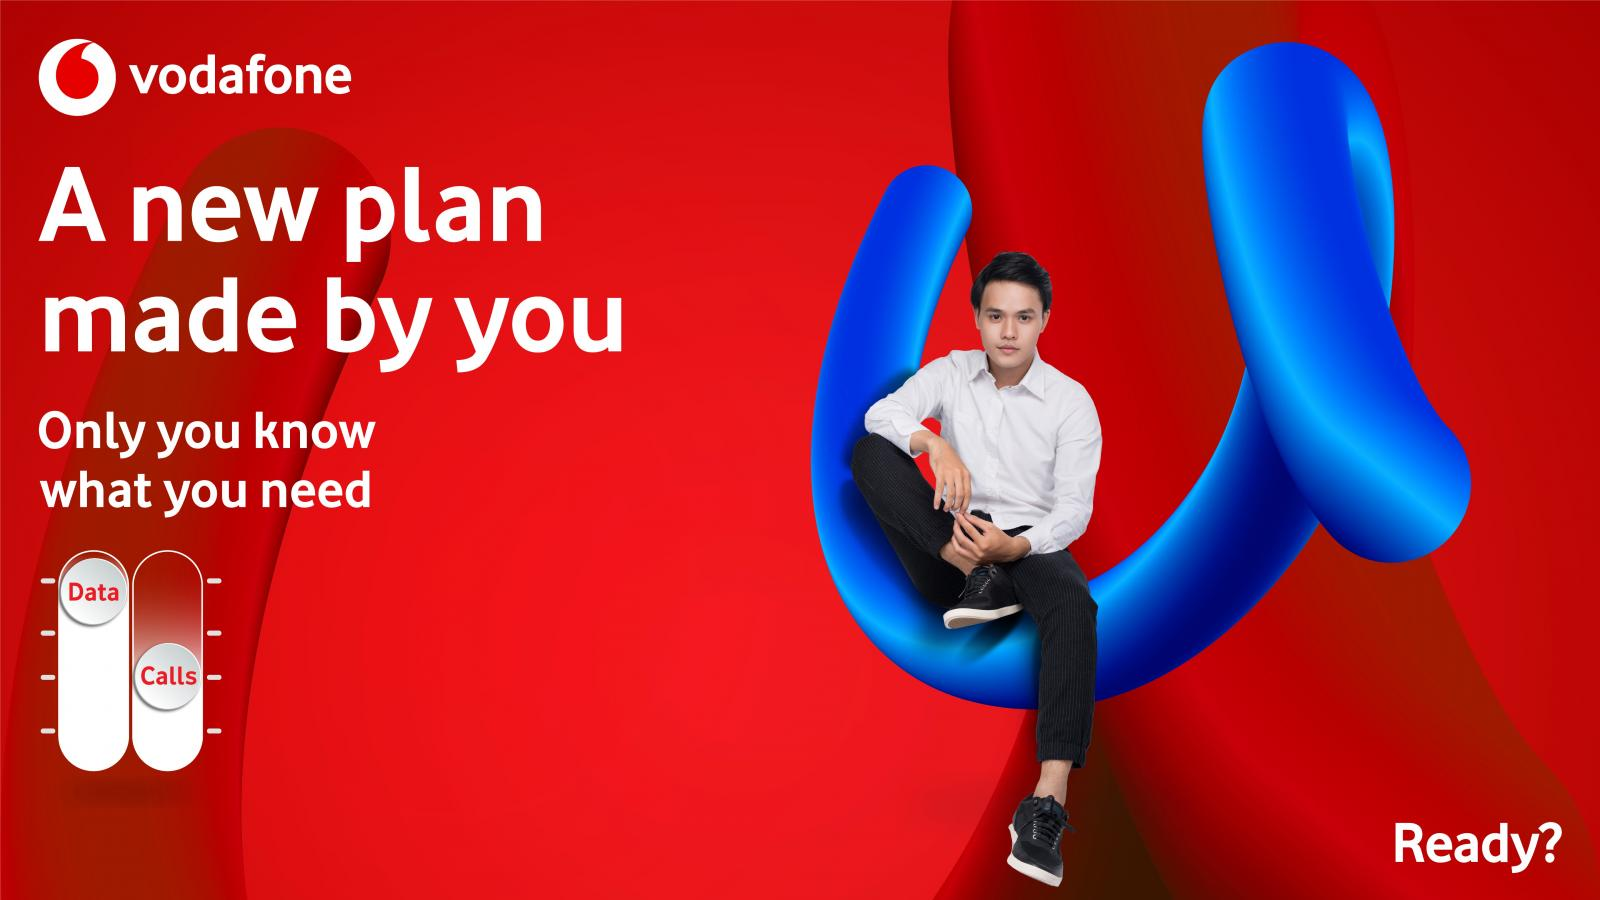 Vodafone's new U-Plans offers wide range of benefits with great flexibility